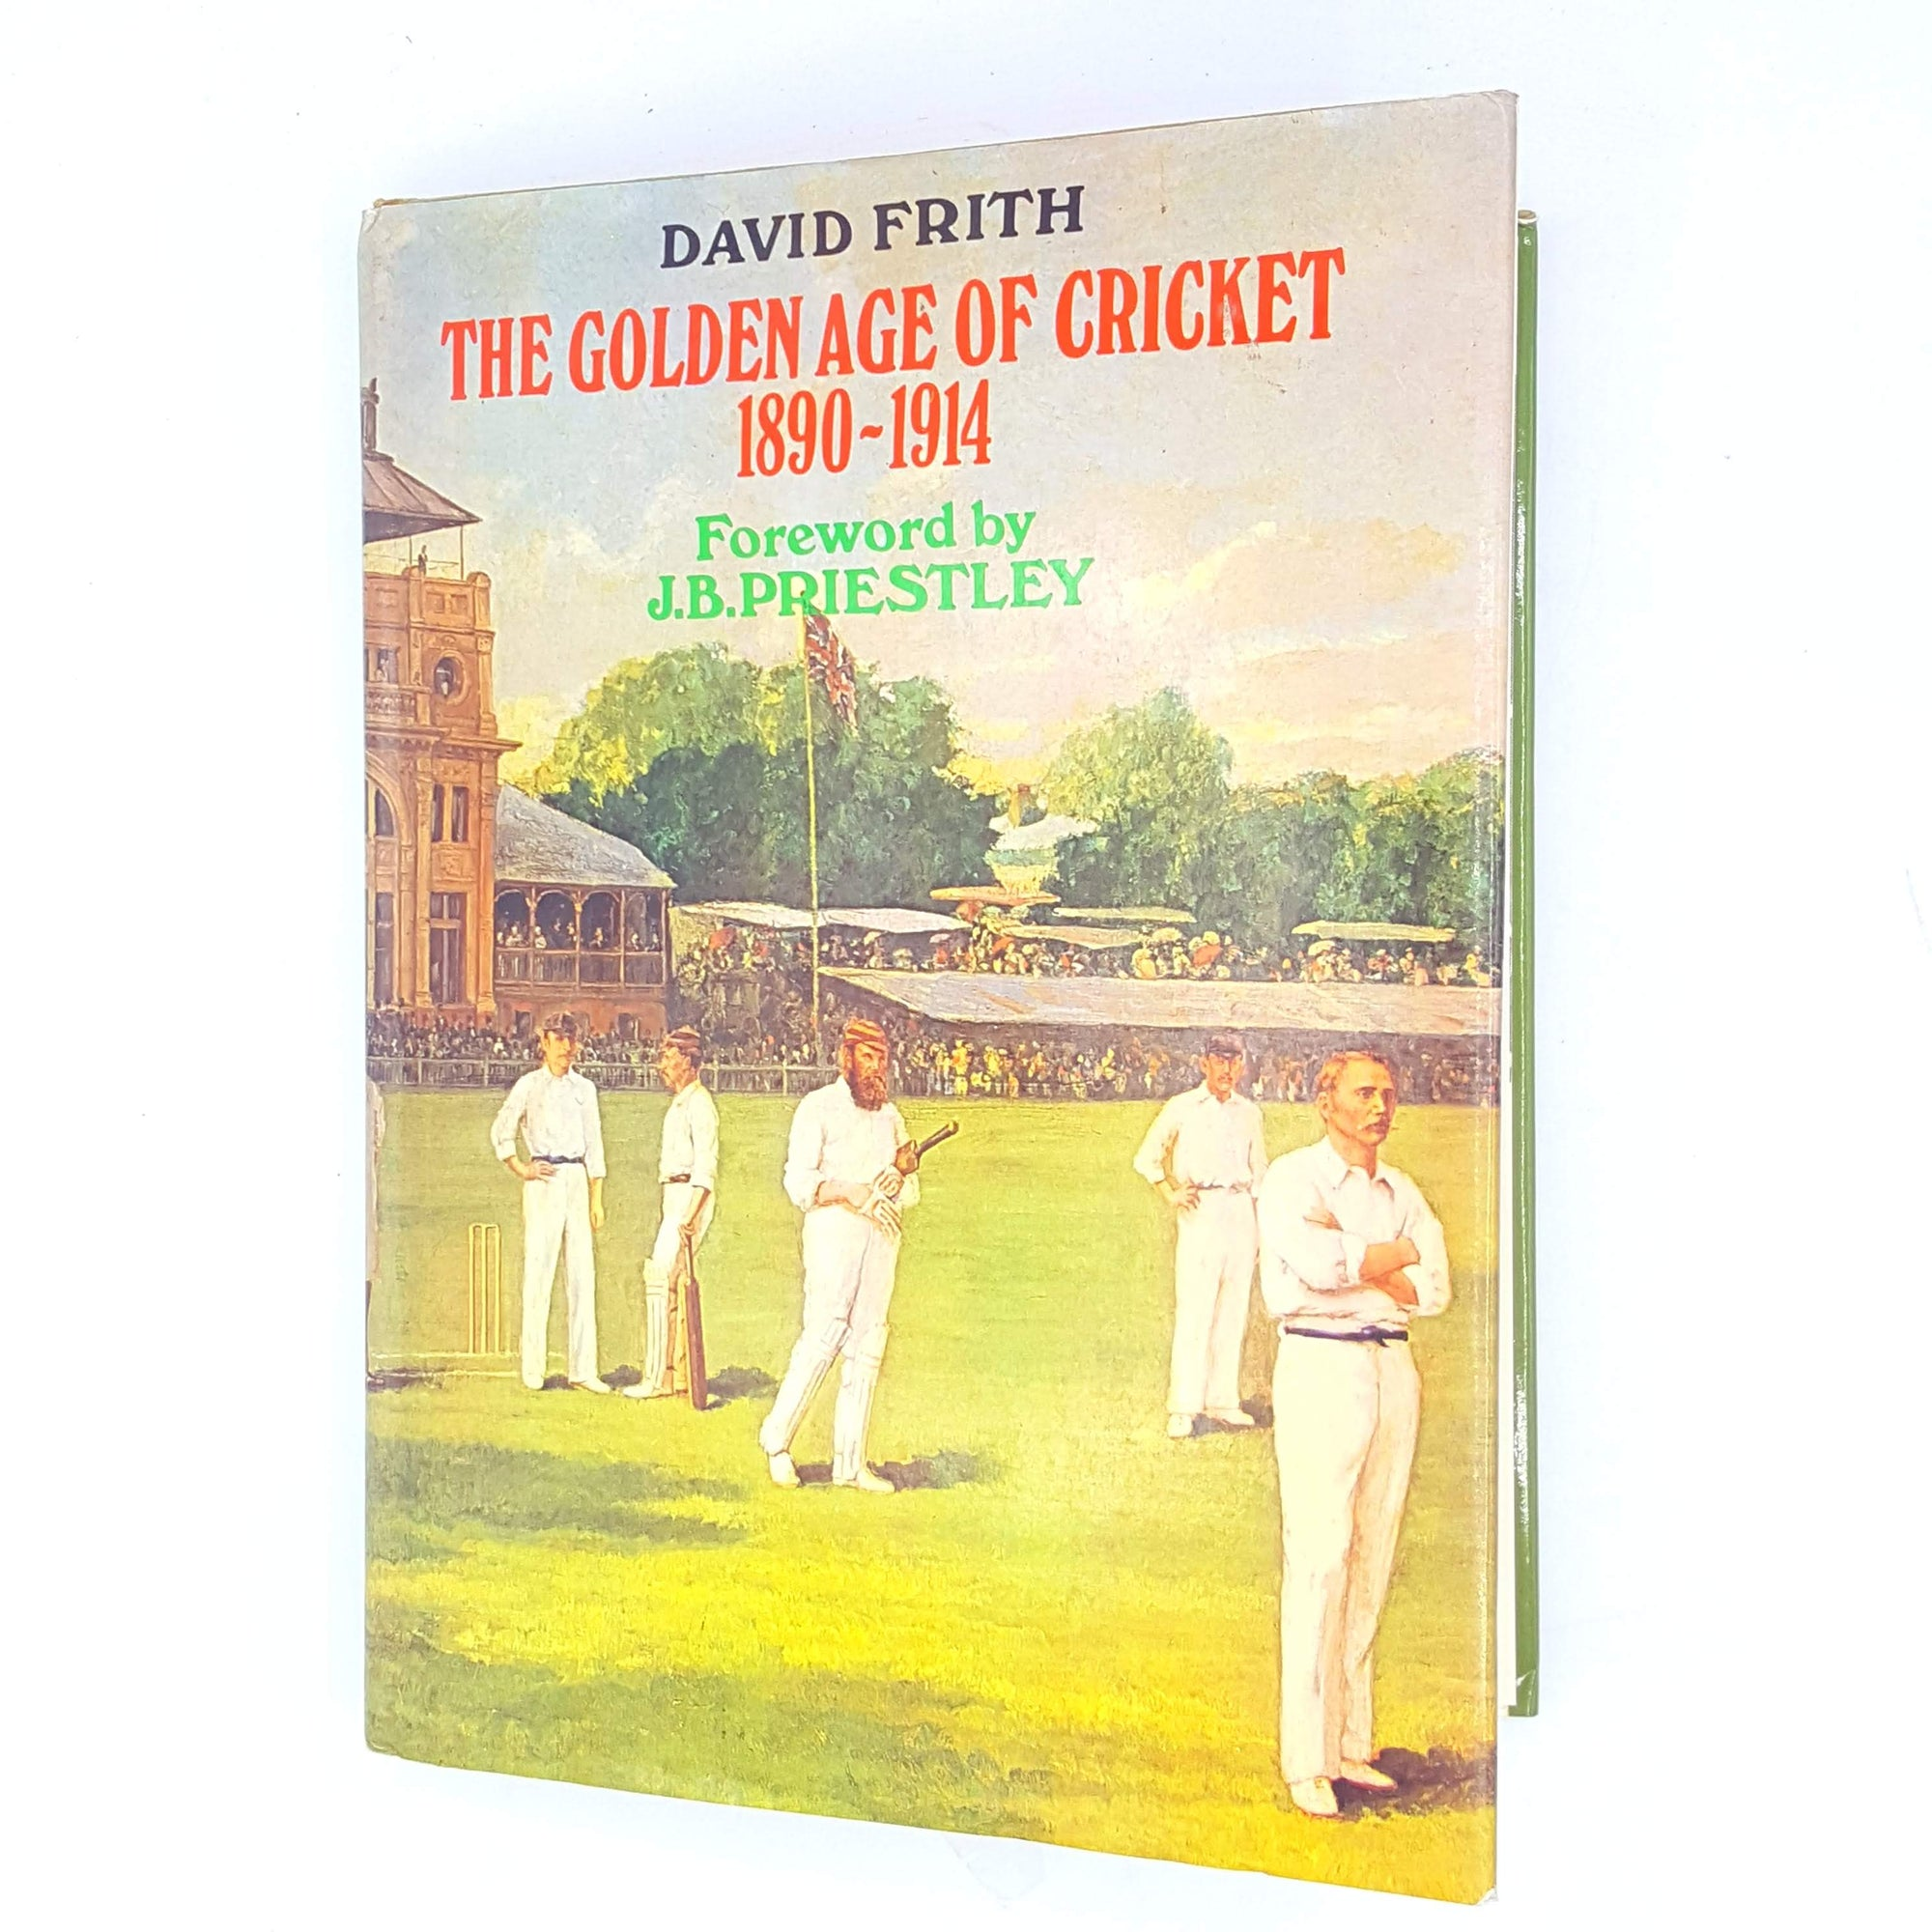 The Golden Age of Cricket 1890 - 1914 by David Frith 1978